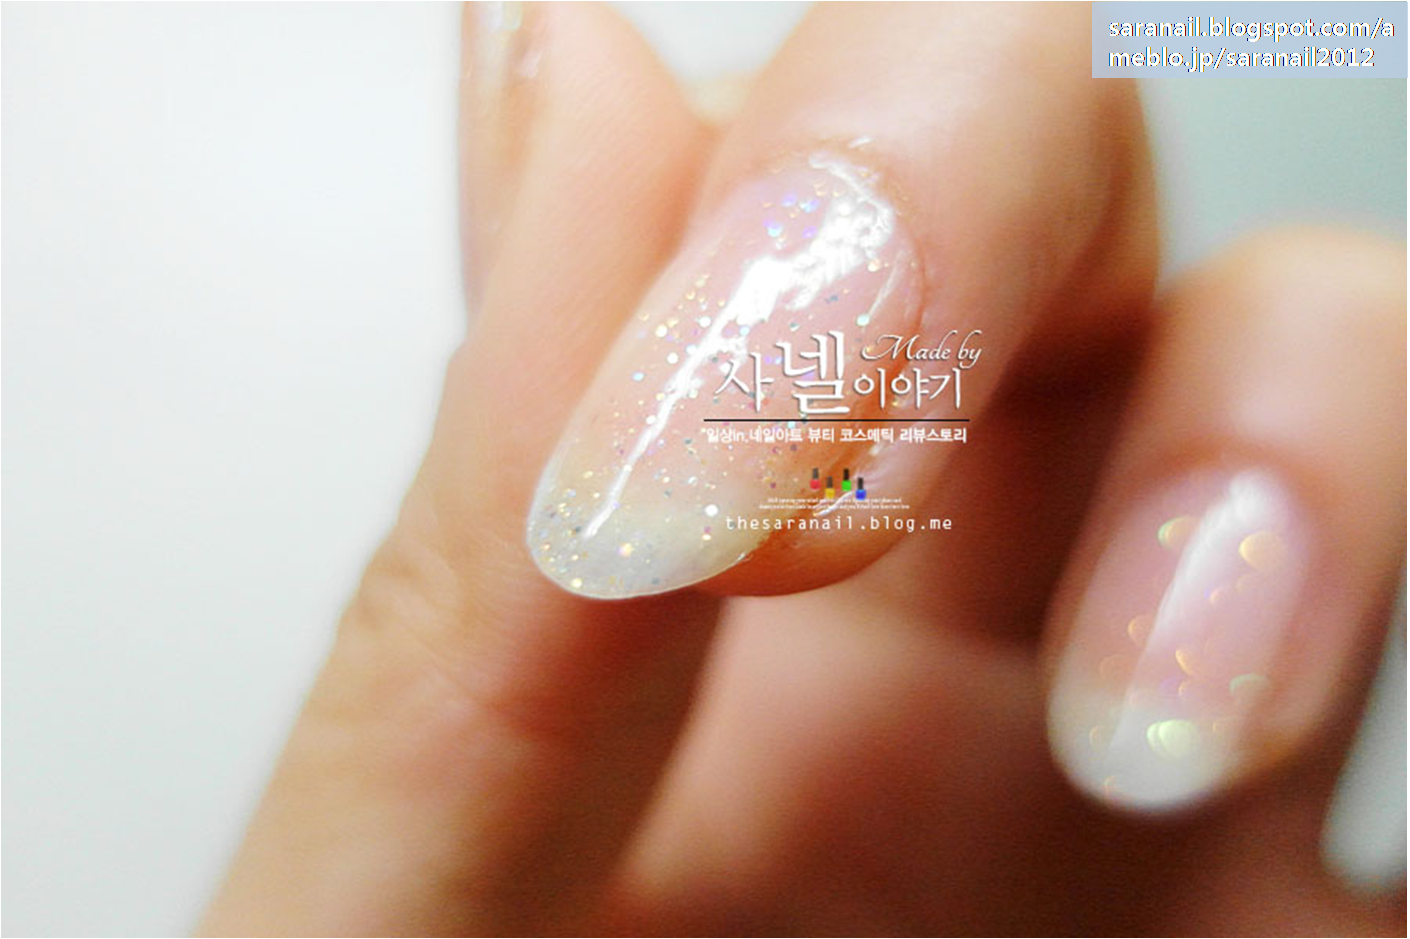 Cute Self Nail Art/ Rainbow Self Nail Art/ Gel Nail Polish/ French Nail Art/ Unicorn Nail Art